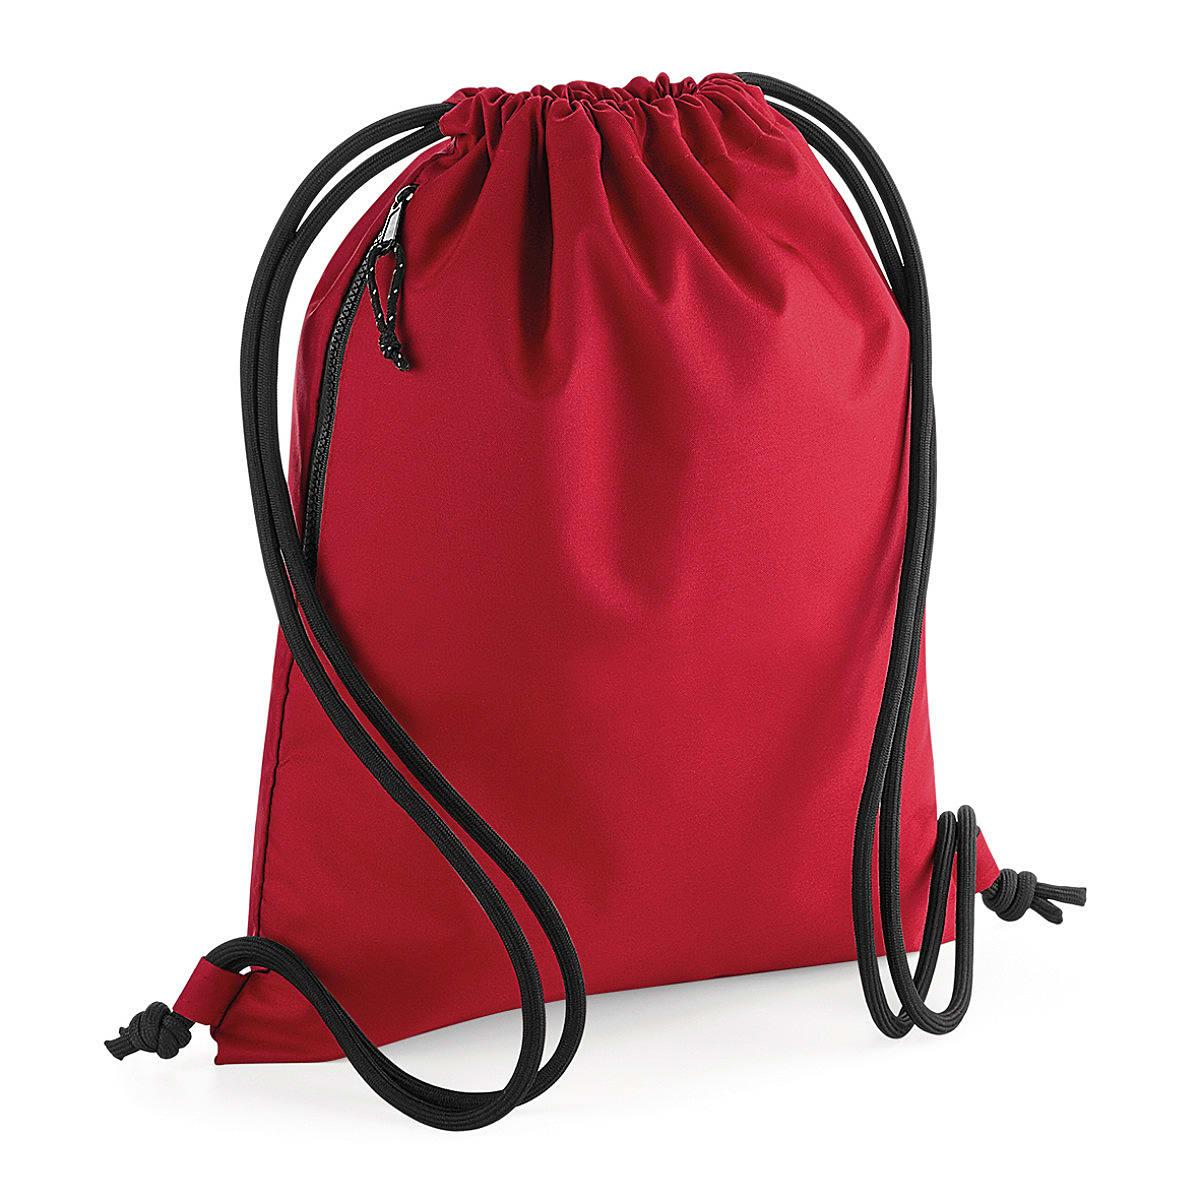 Bagbase Recycled Gymsac in Classic Red (Product Code: BG281)